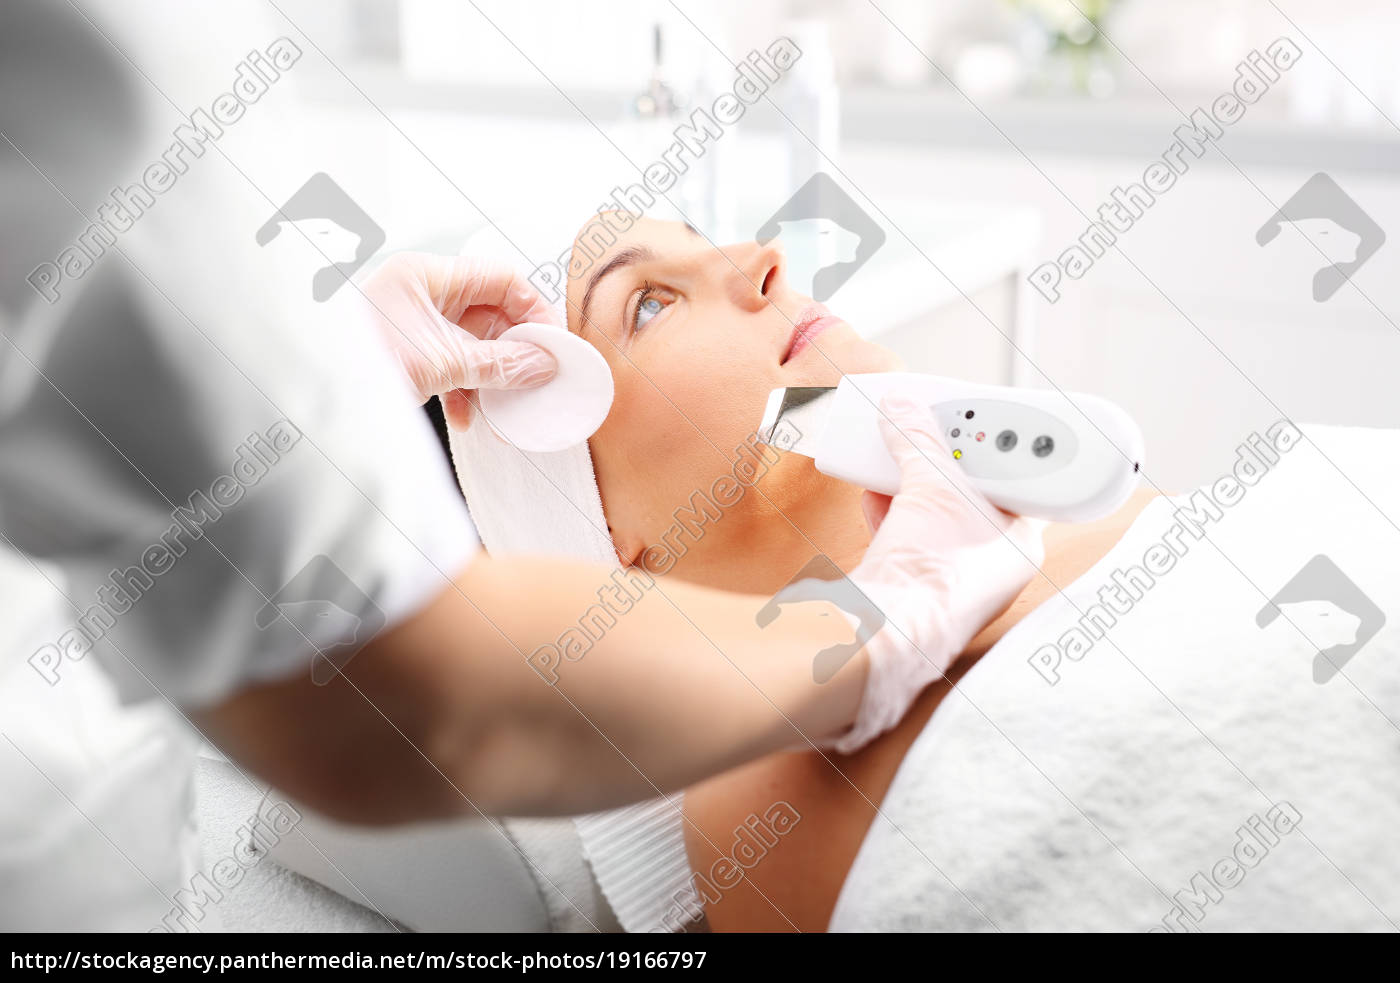 cavitation, peeling, facial, treatment - 19166797